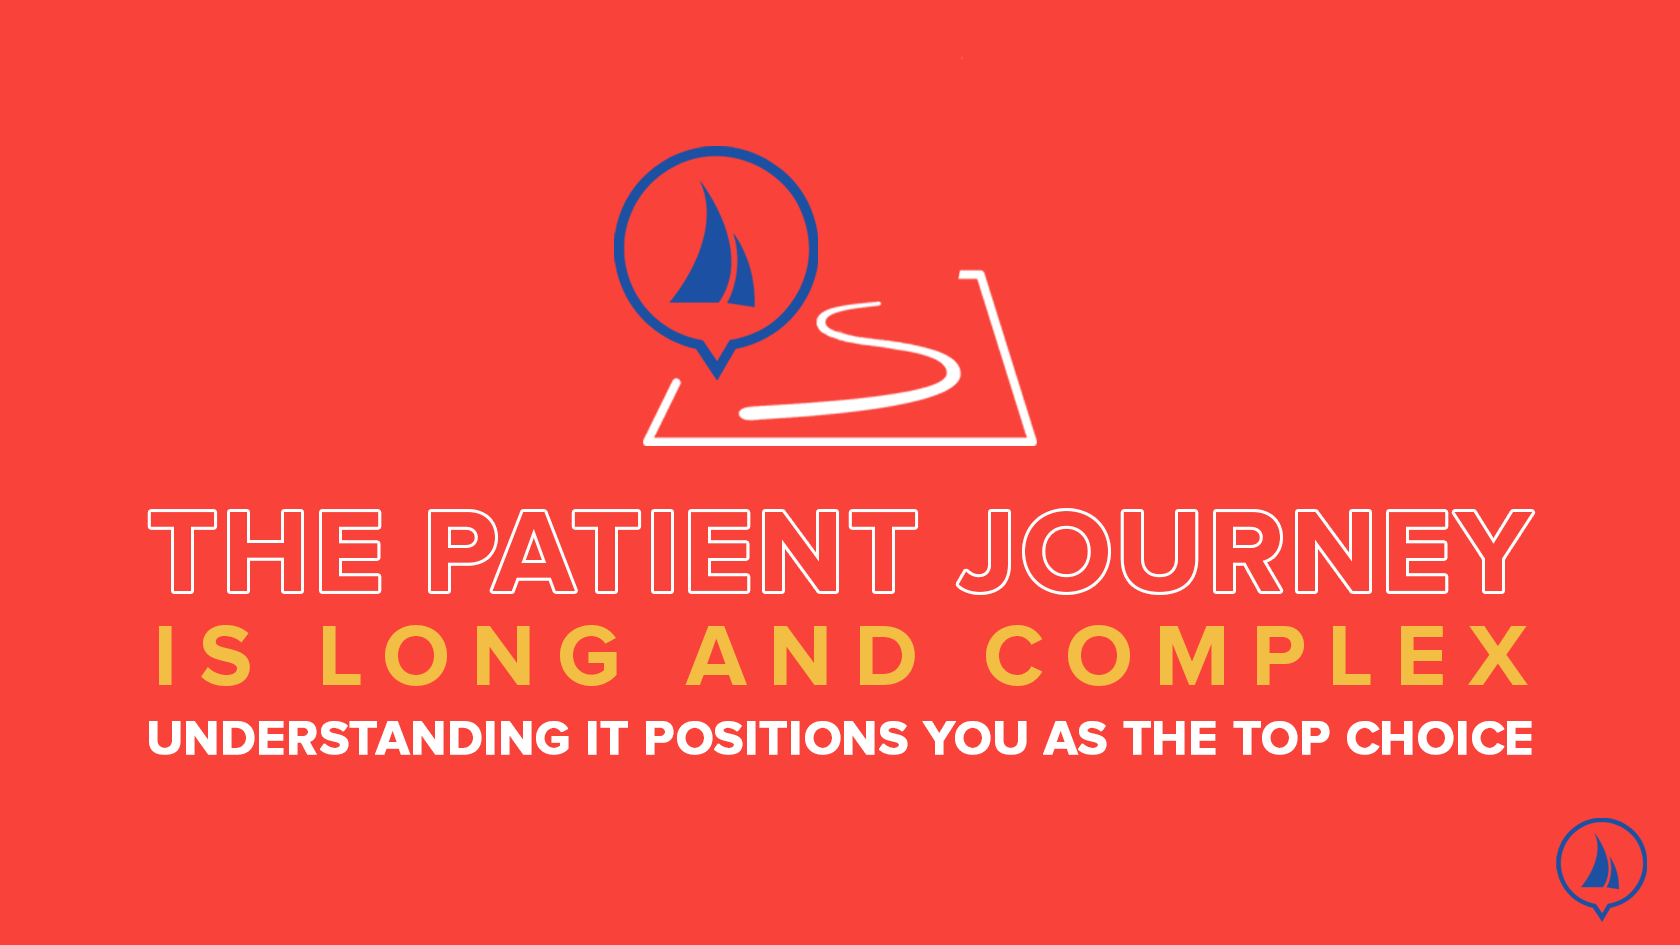 Understanding-The-Patient-Journey-Positions-Your-Practice-As-The-Top-Choice-For-New-Patients---Jib-Sheet-Partners-Medical-Marketing-Agency